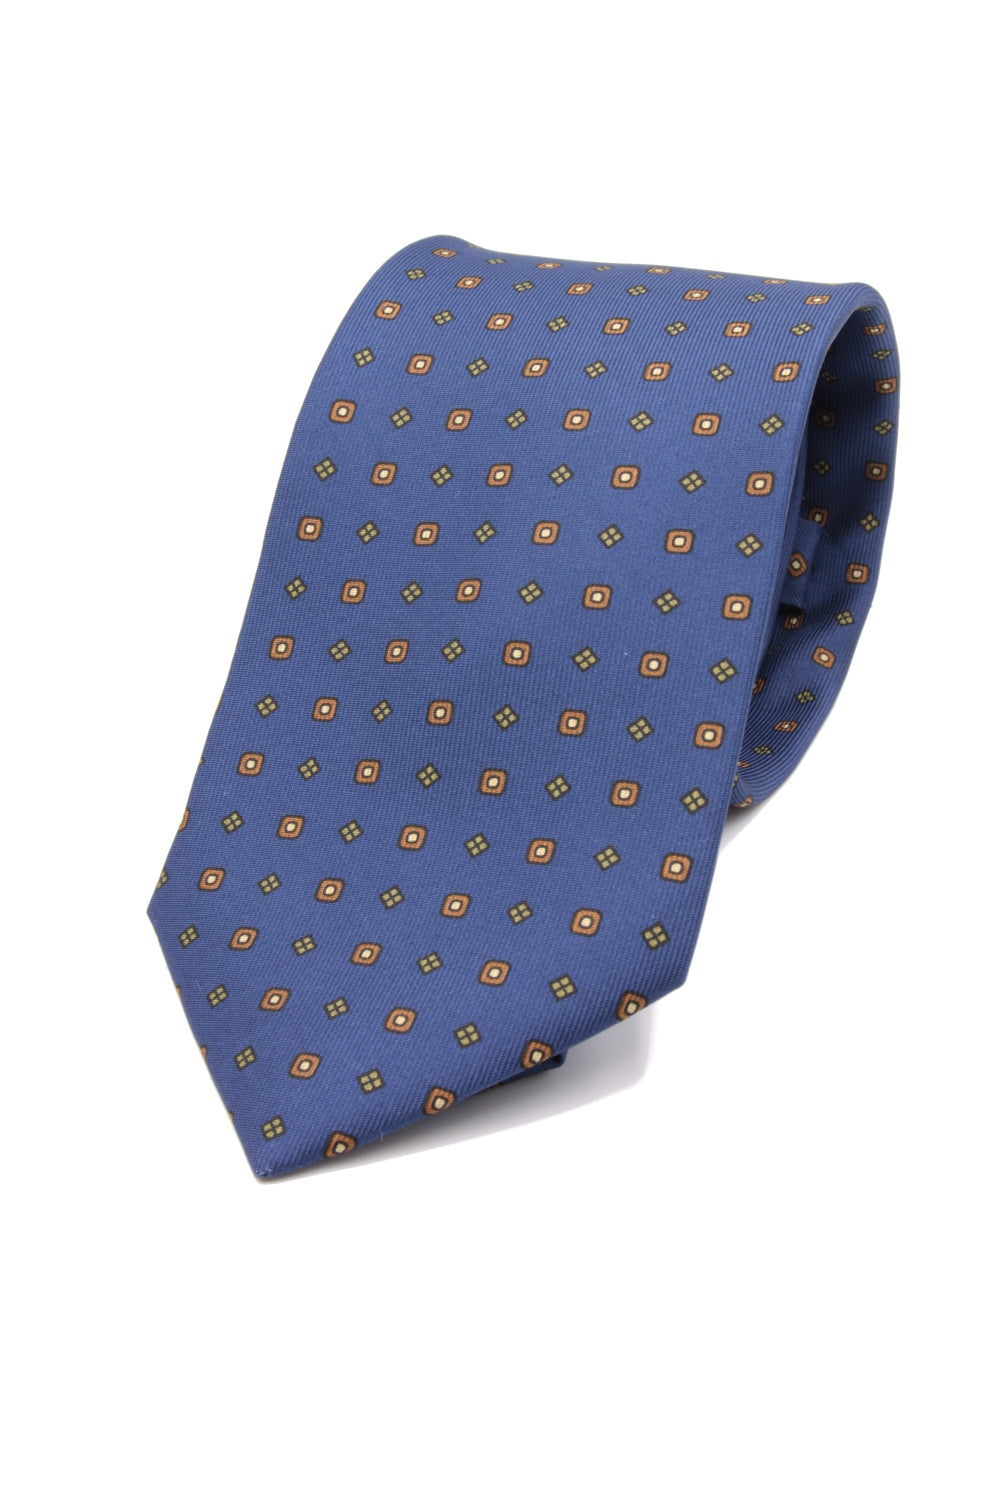 drake's Royal blue, rust, olive green and beige print tie